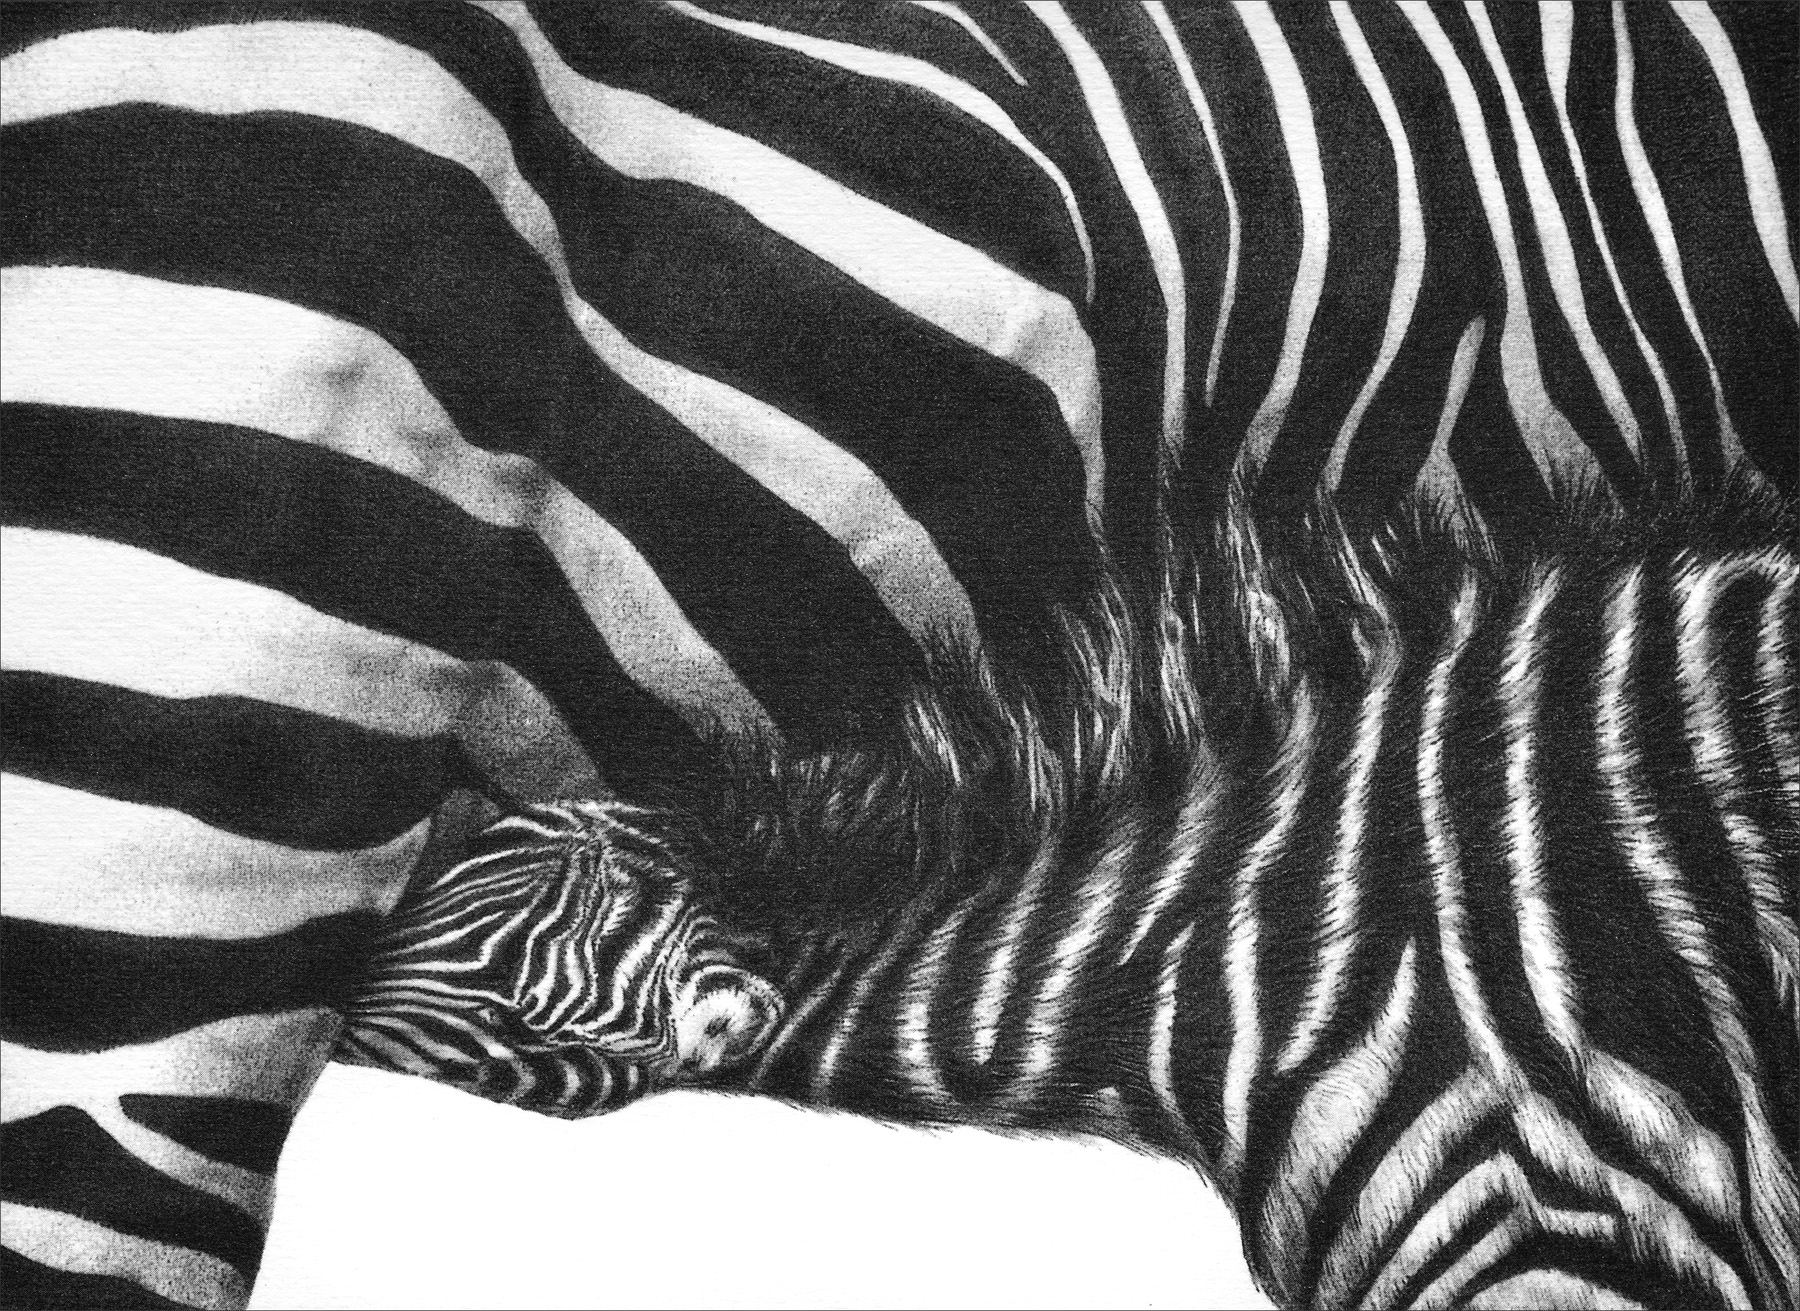 Tender Moment 1999 (zebra)